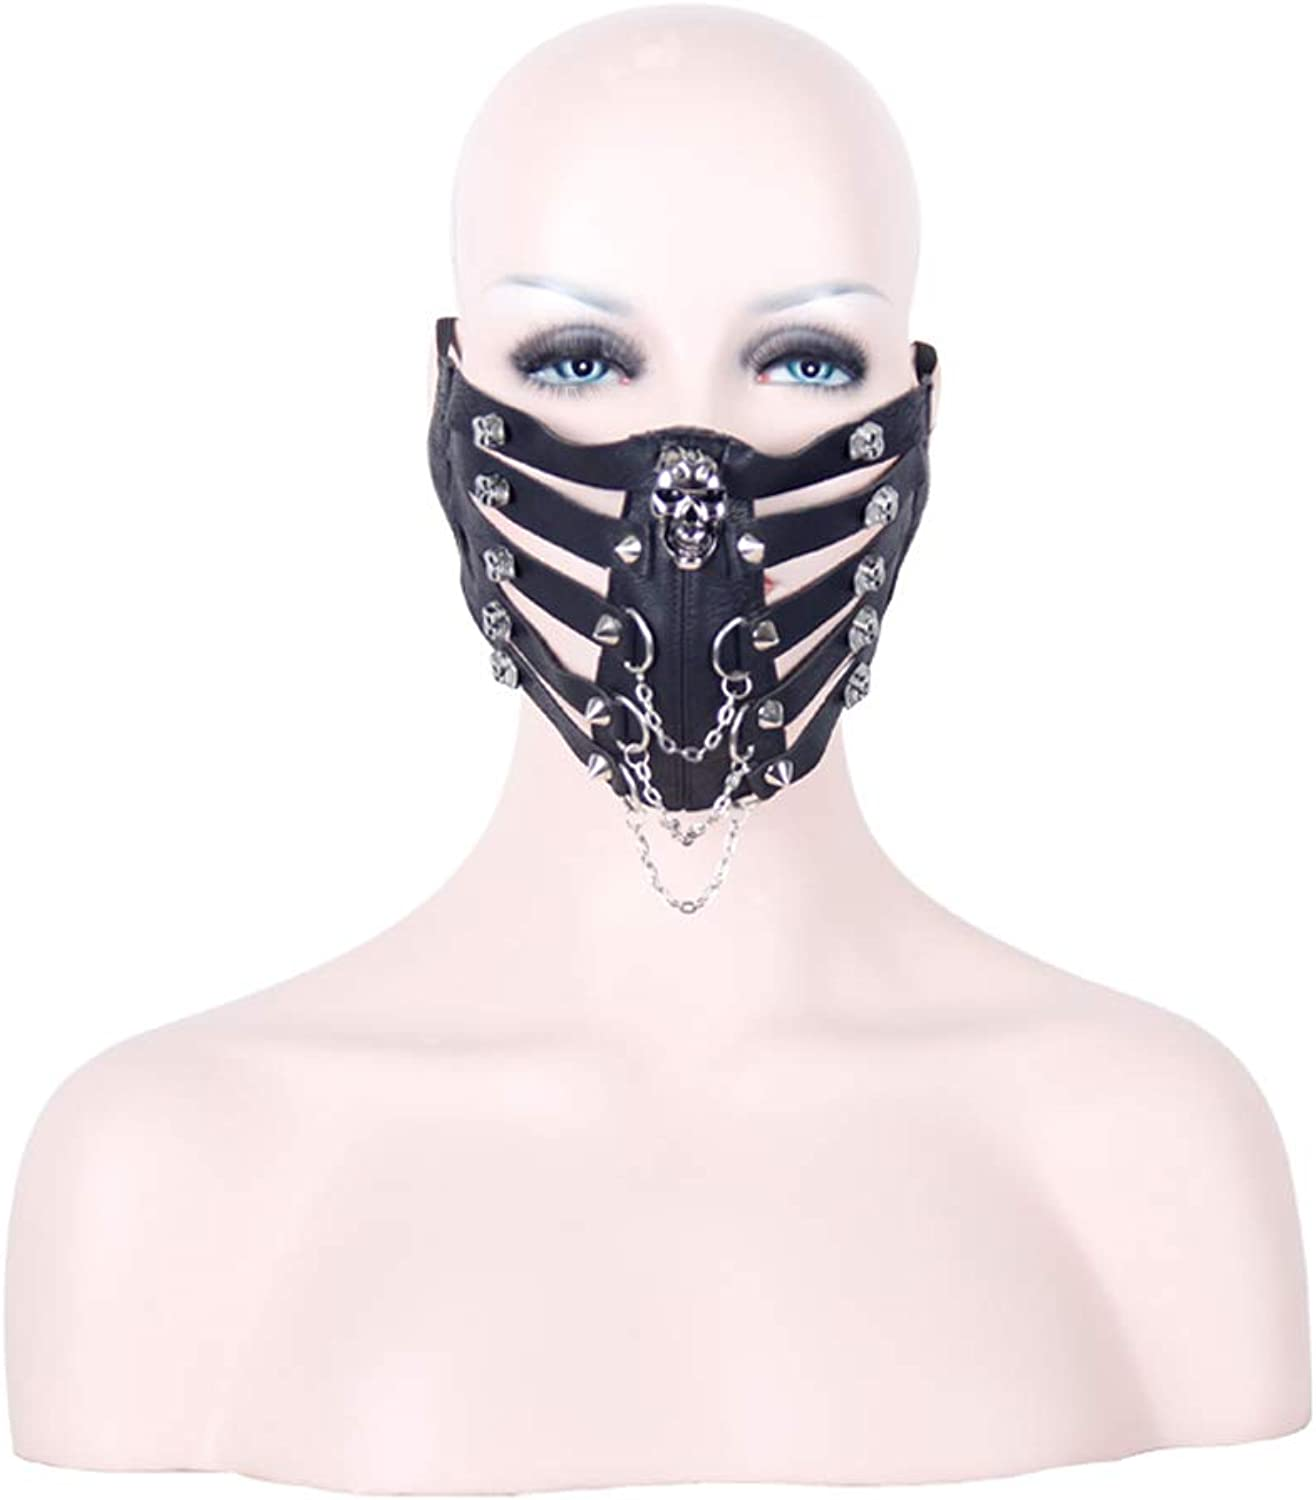 Halloween mask Costume Masquerade Party Skull Rock Stage Perform Punk Men Women Leather Mask Steampunk Skeleton Winter Half Face Mask Masquerade